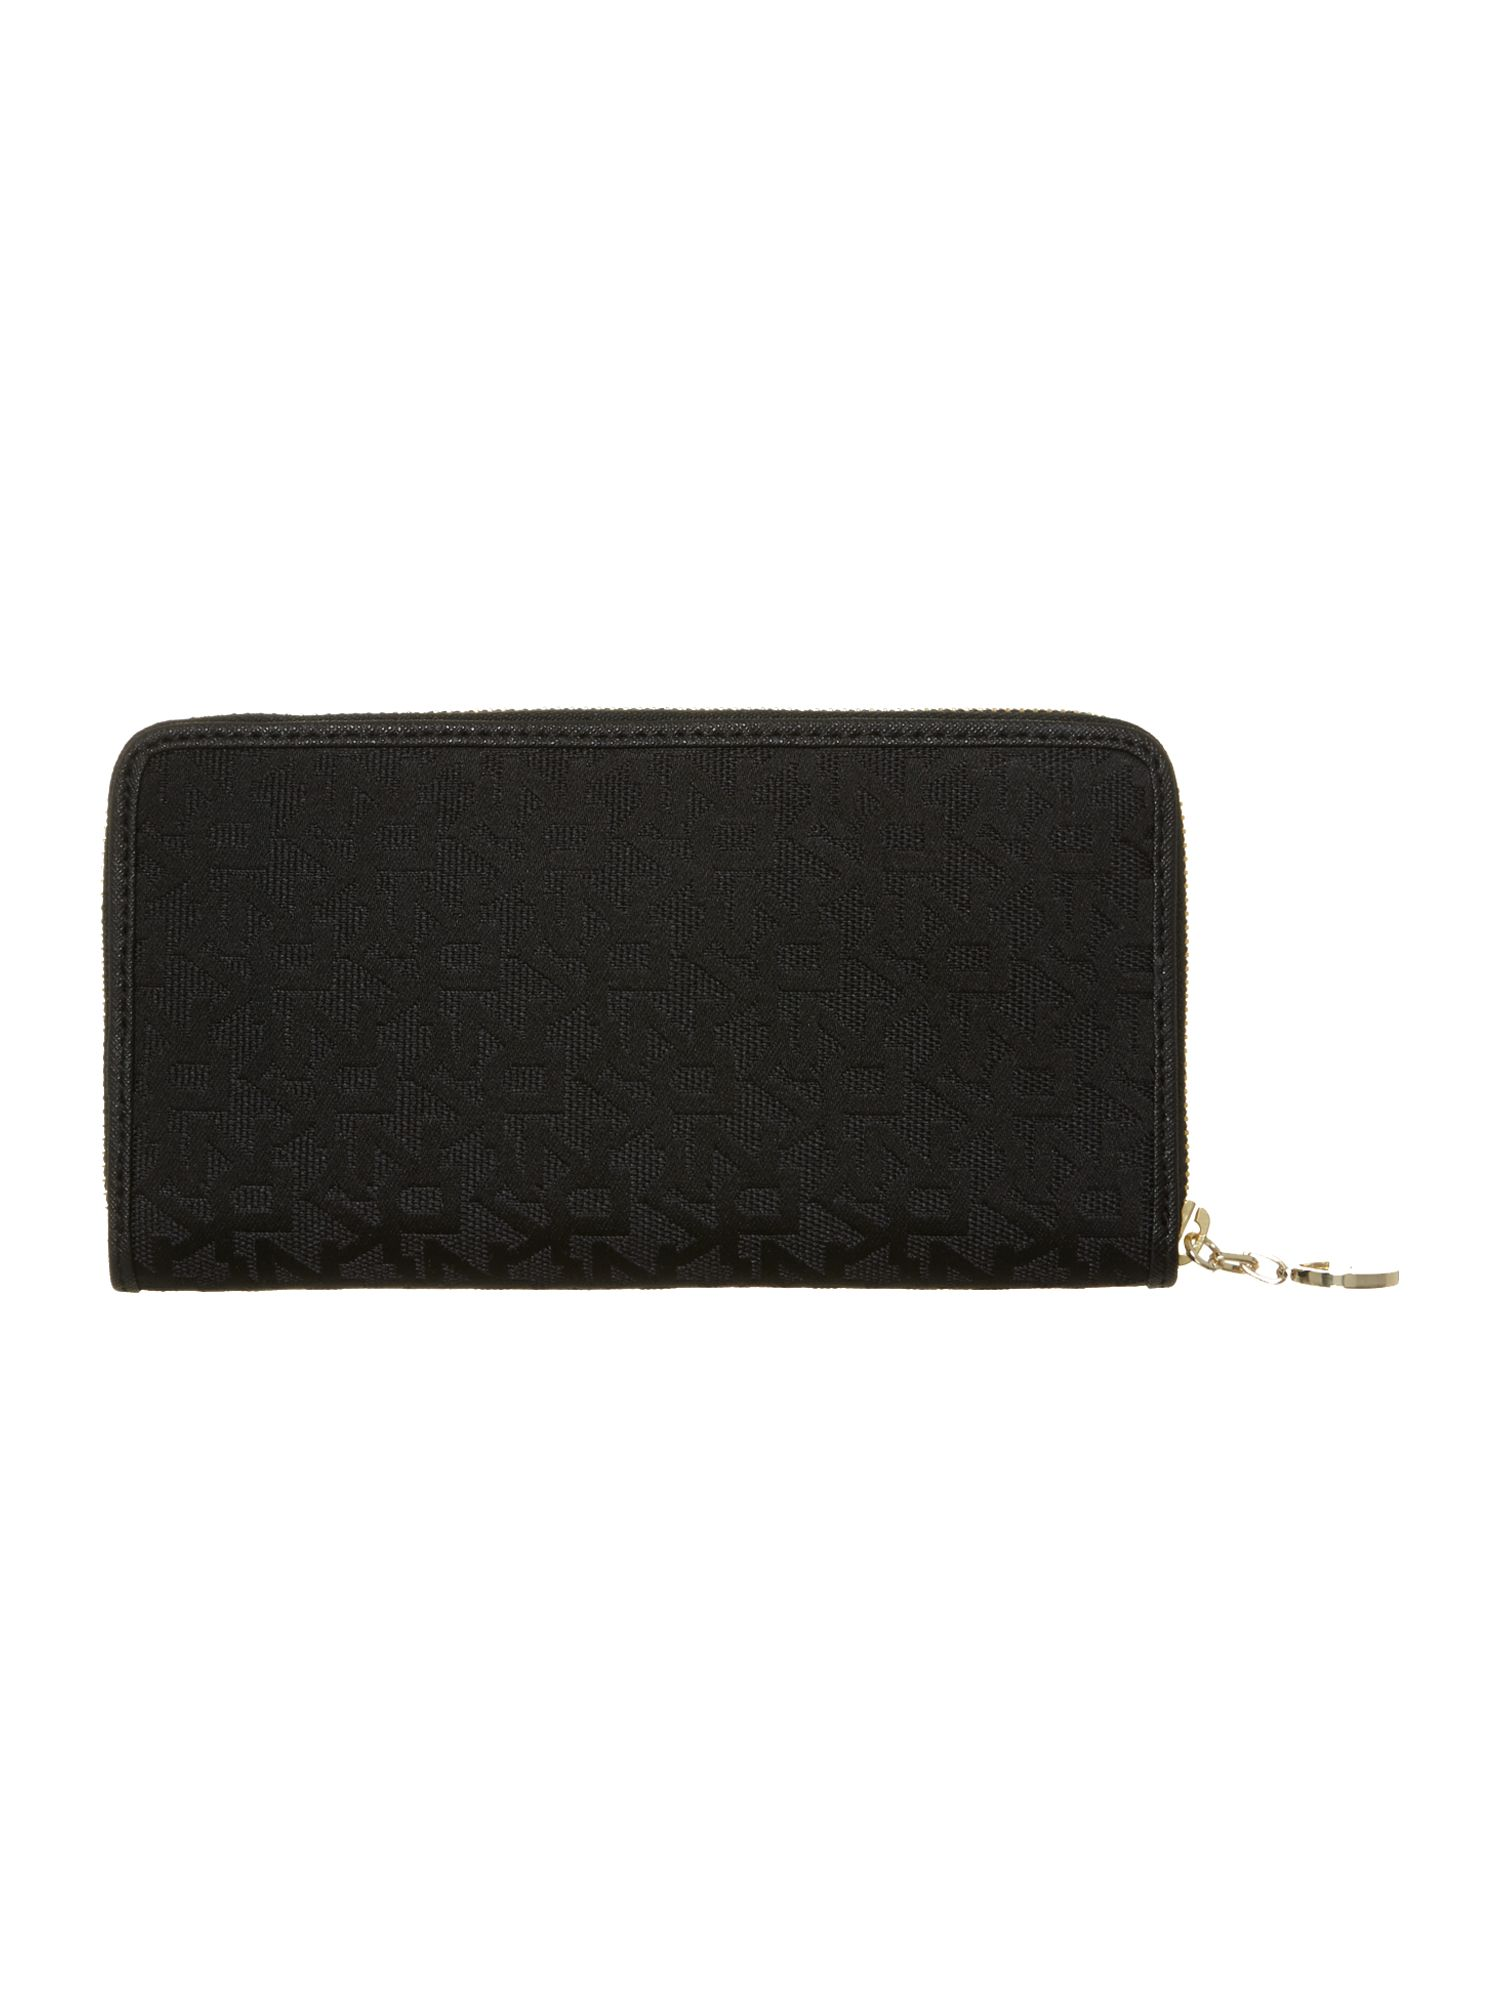 Black large zip round purse